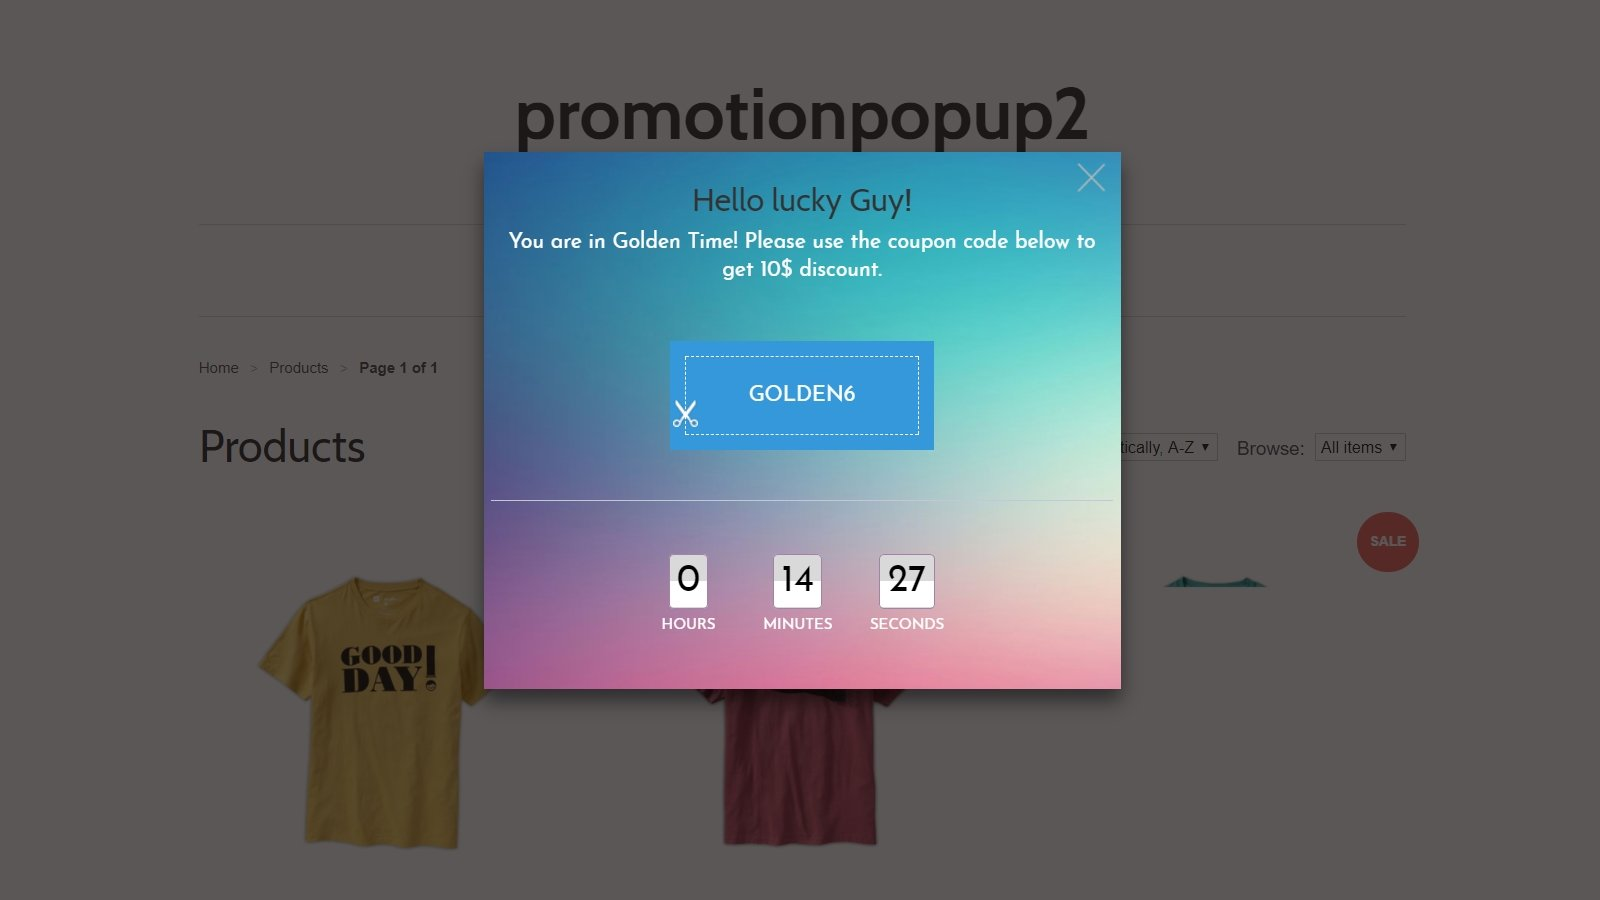 shopify promotion popup app by Secomapp - Coupon popup